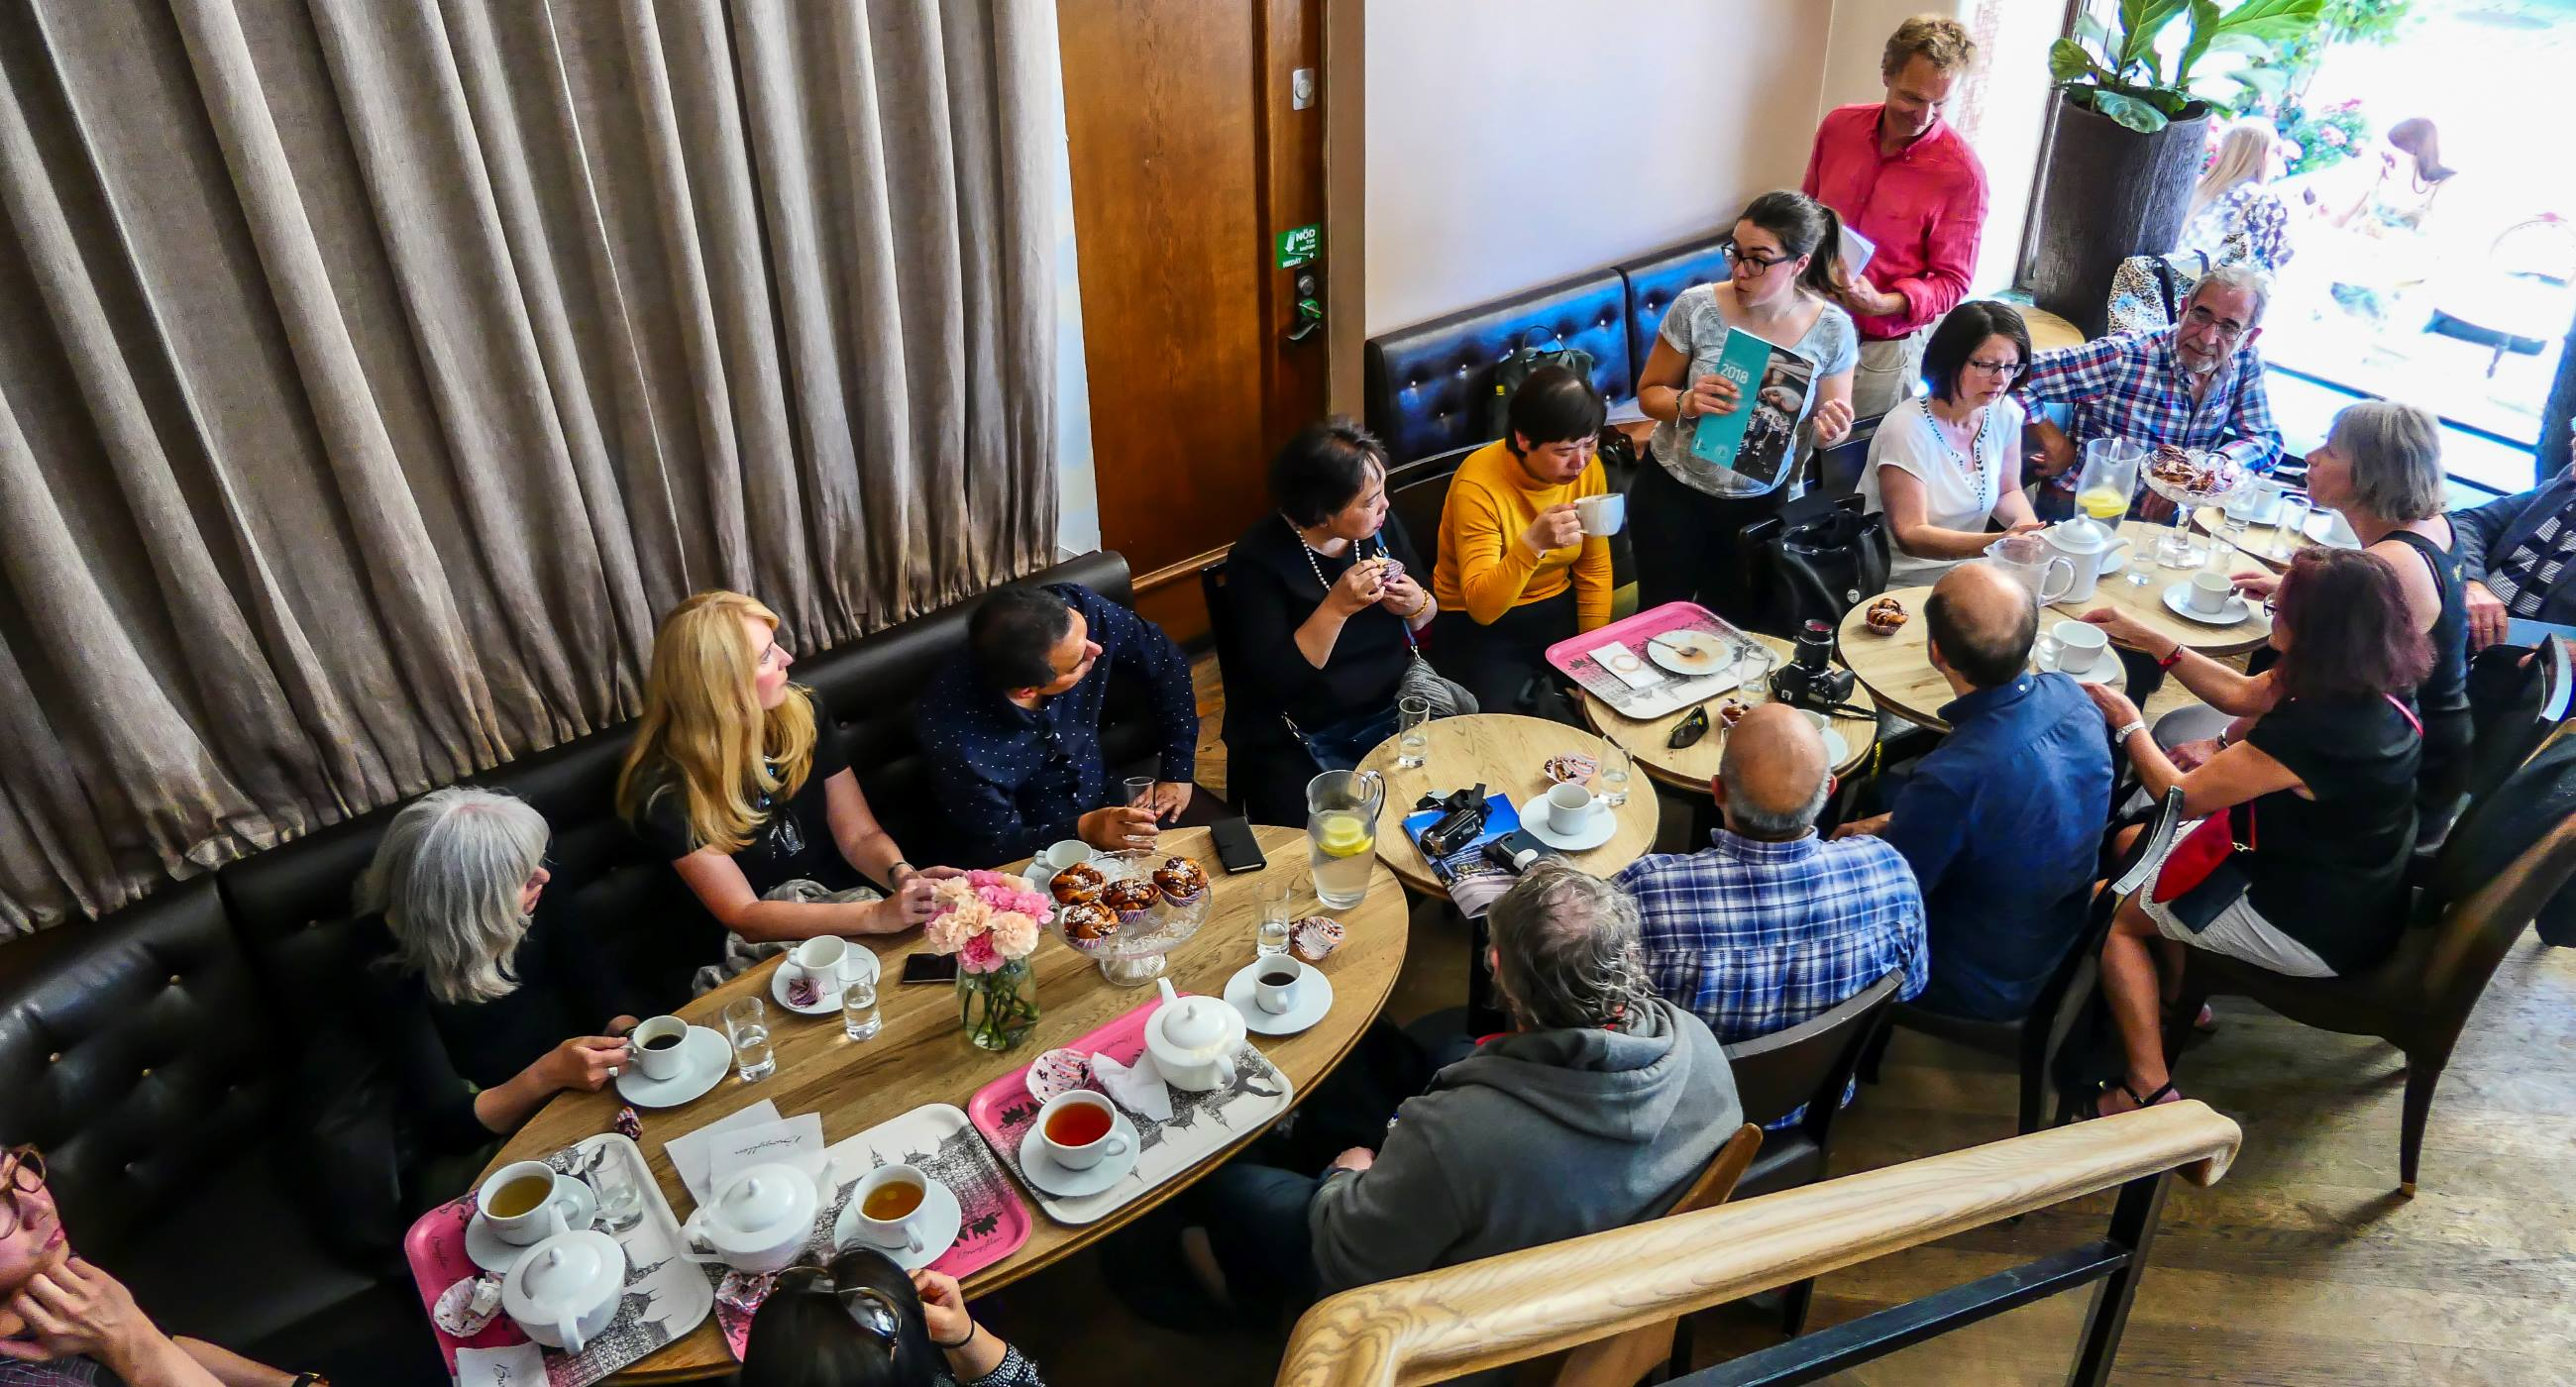 Group-of-adults-enjoying-each-others-company-drinking-coffee-during-Fika-time